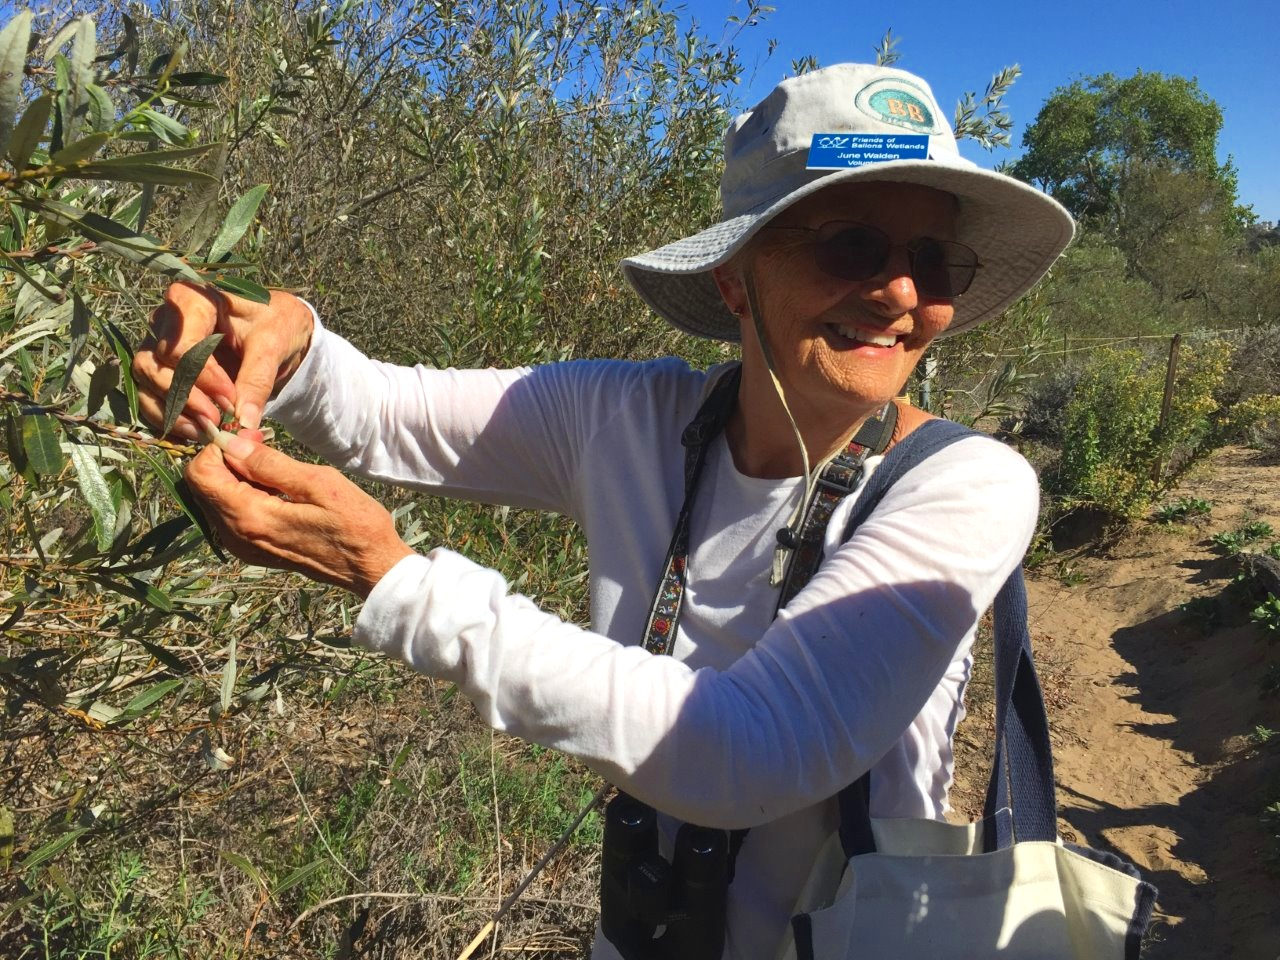 June, a Friends of Ballona Wetlands Docent